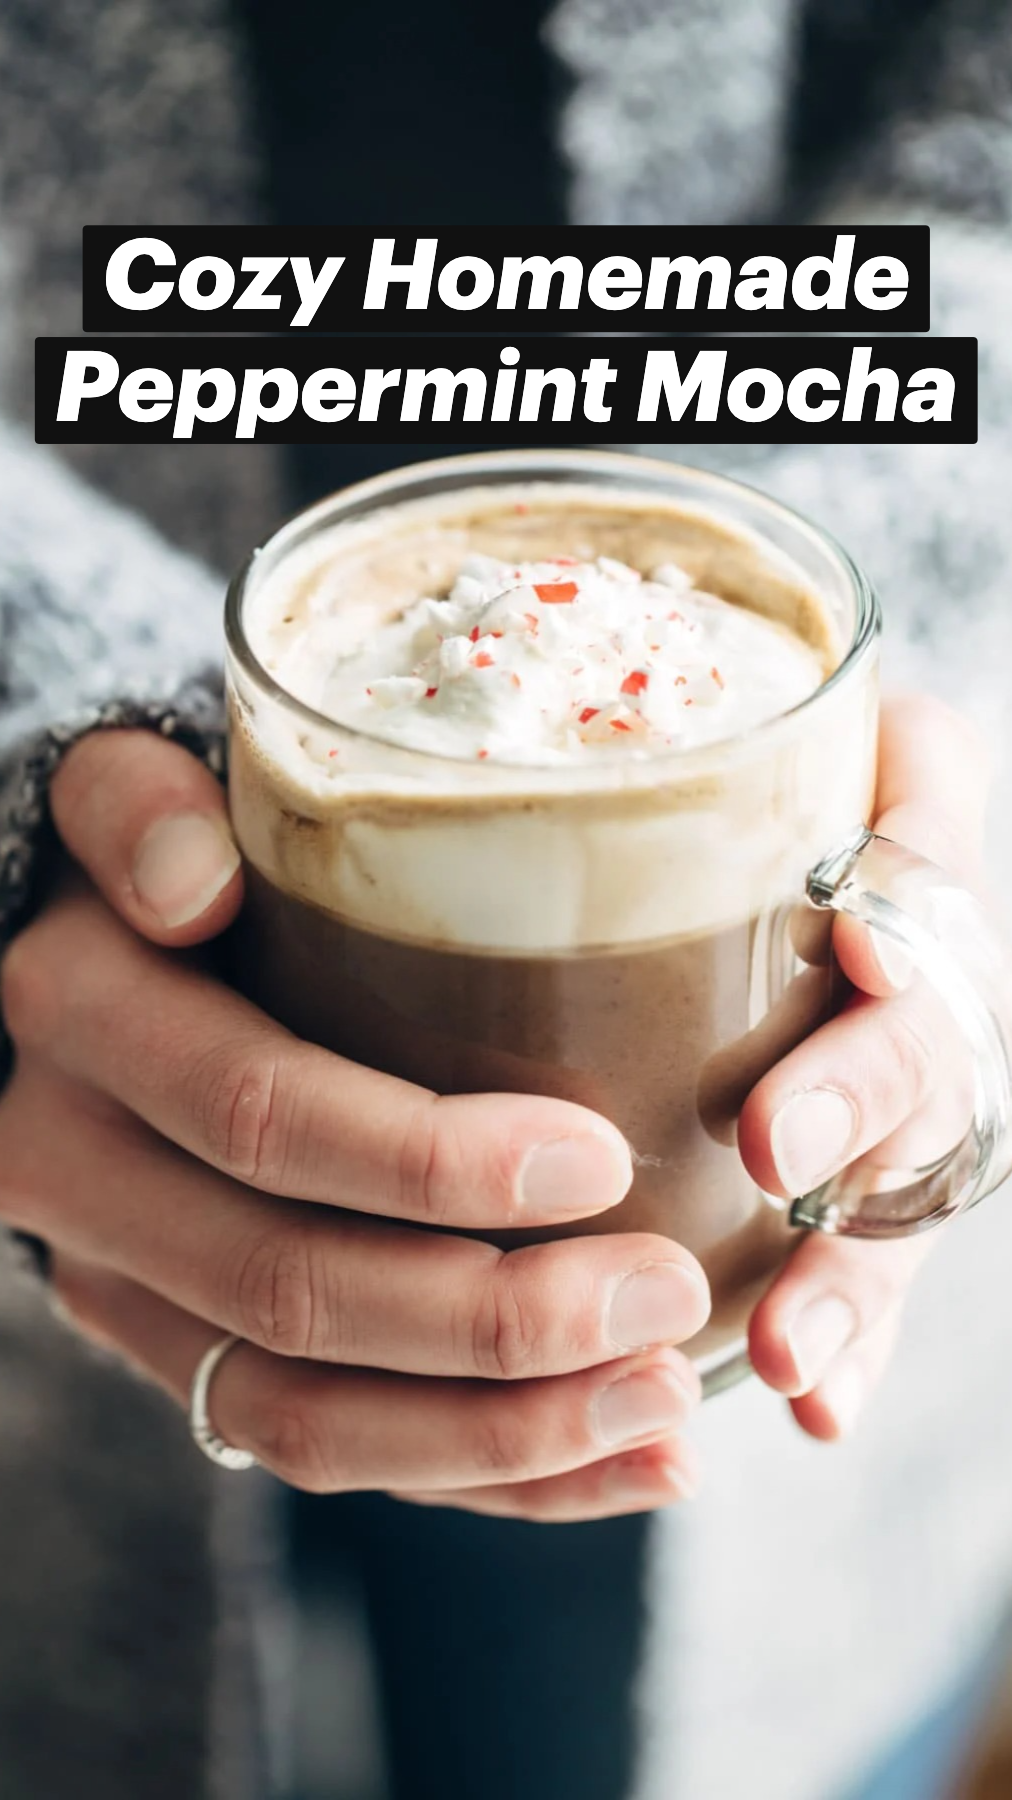 Cozy Homemade Peppermint Mocha